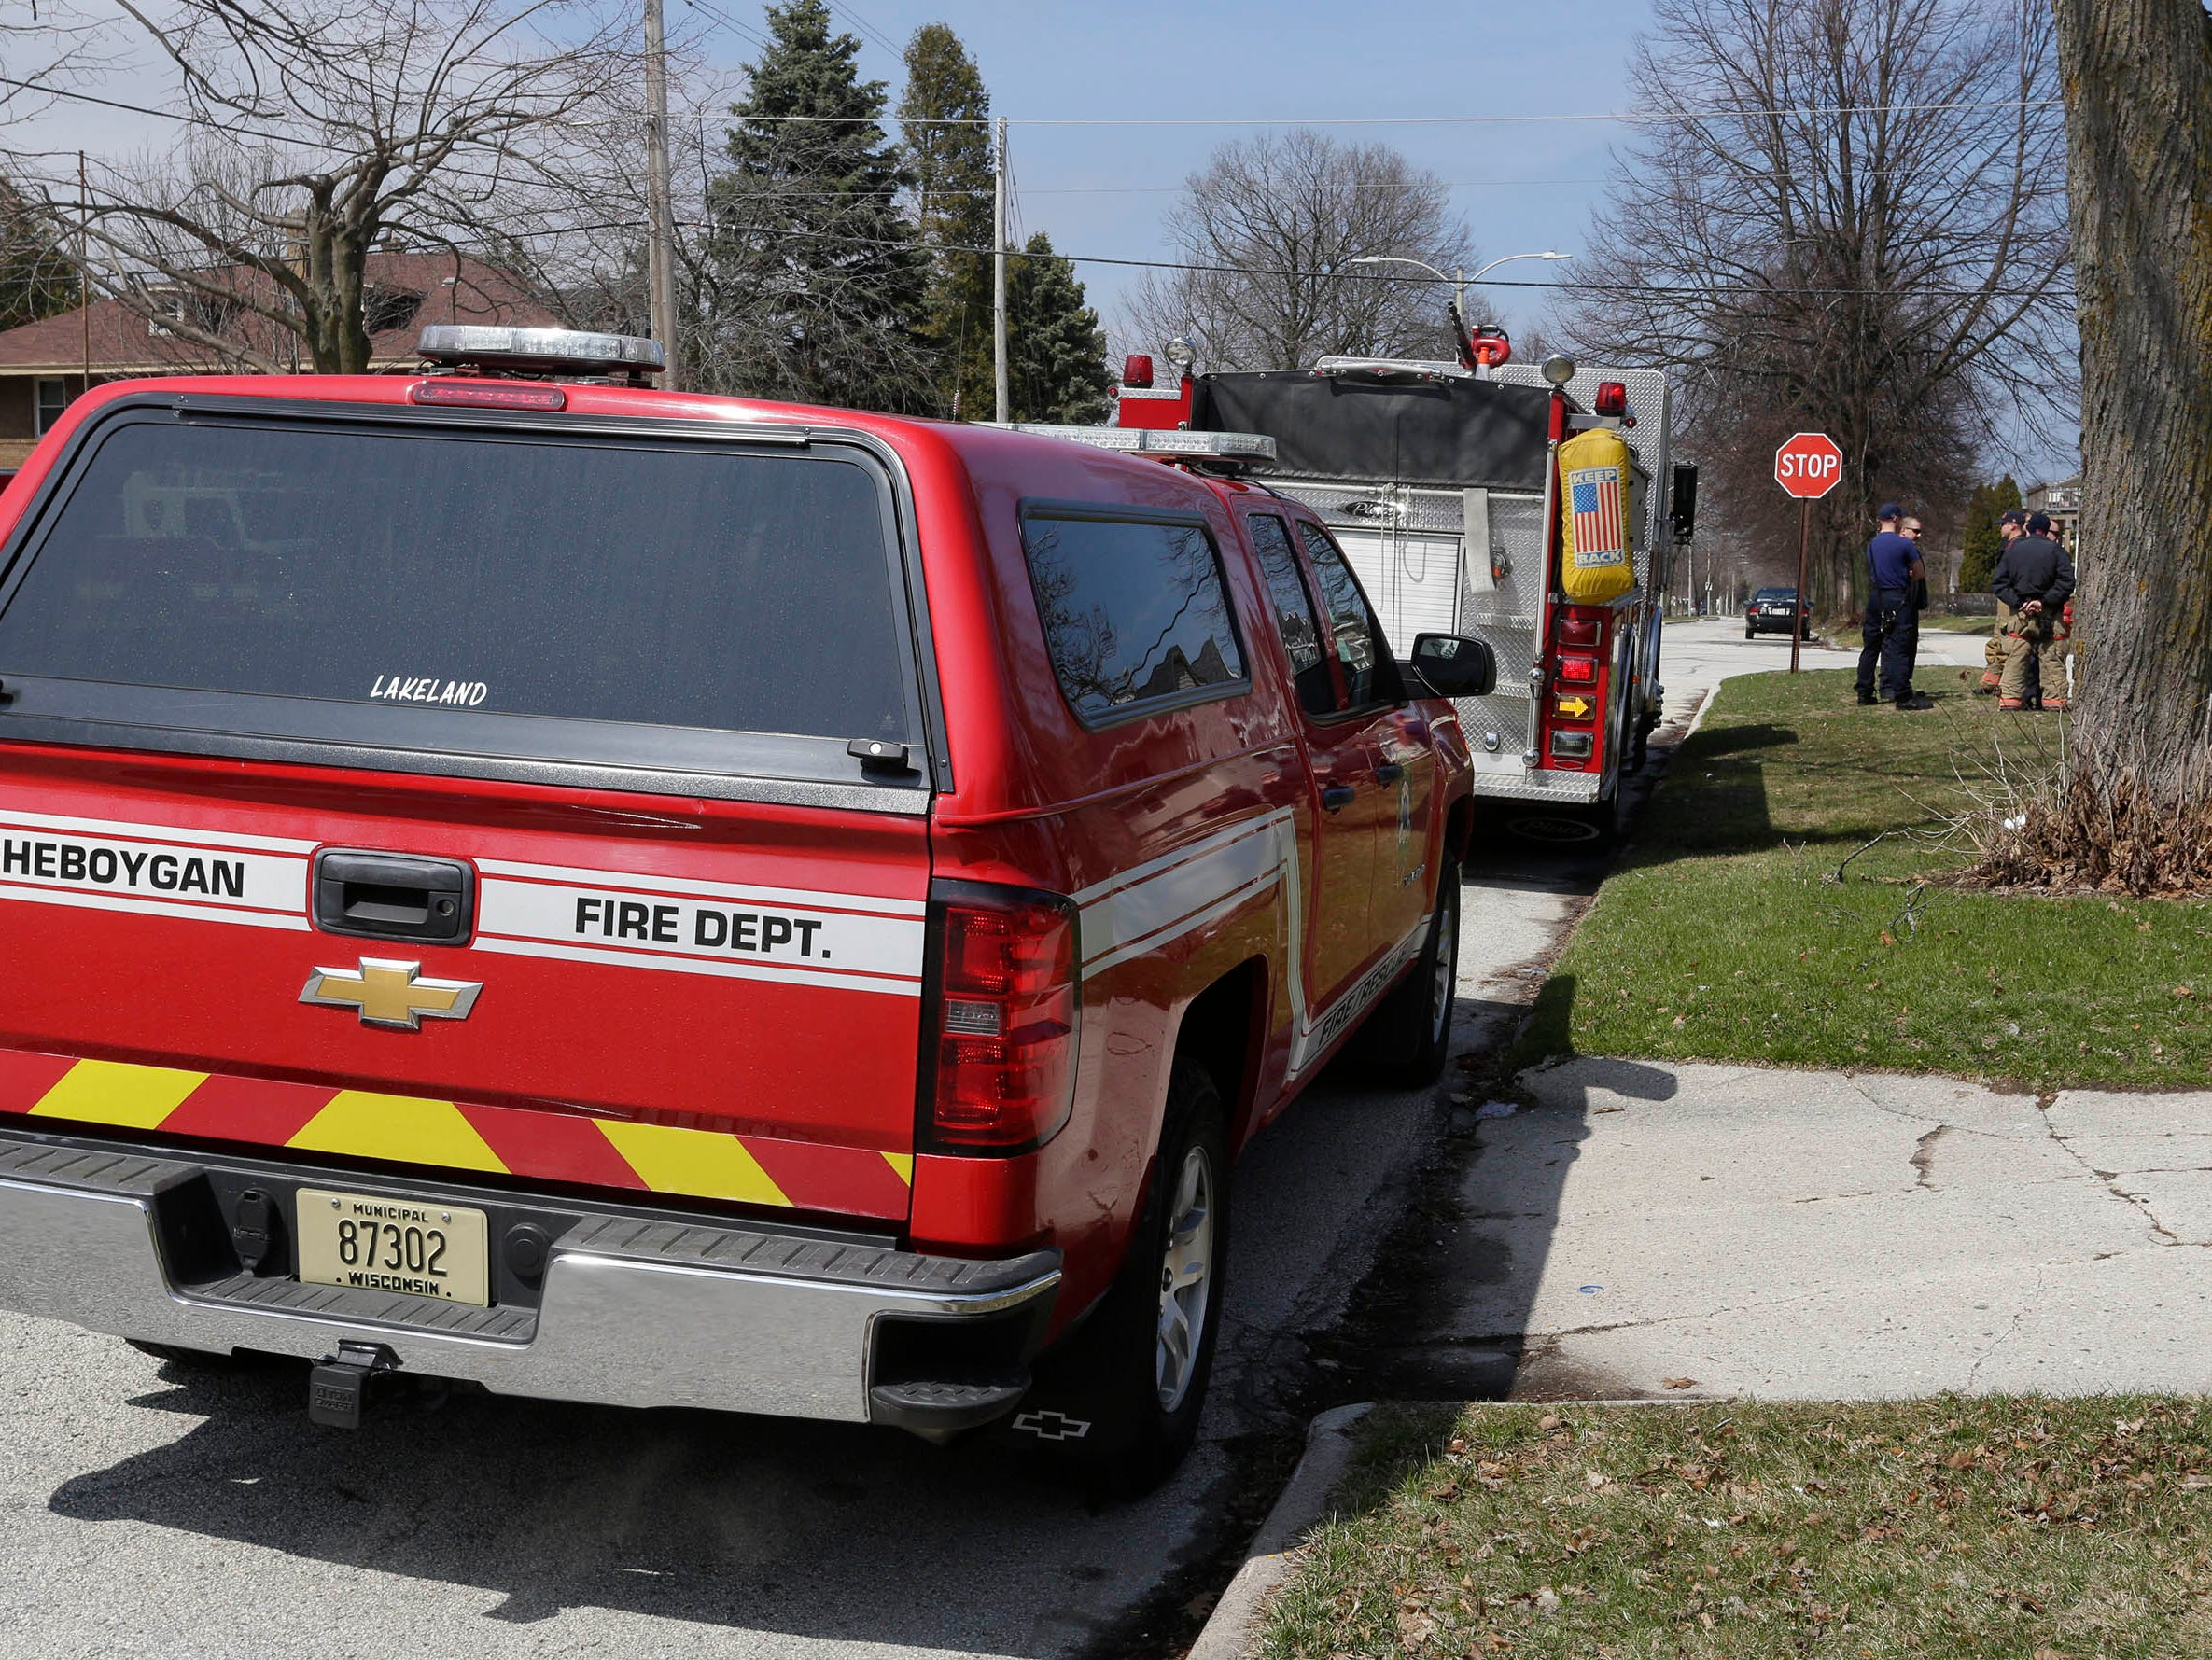 DRILL EXERCISE:  A scene at the training exercise for Sheboygan area emergency agencies, Tuesday, April 16, 2019, in Sheboygan, Wis.